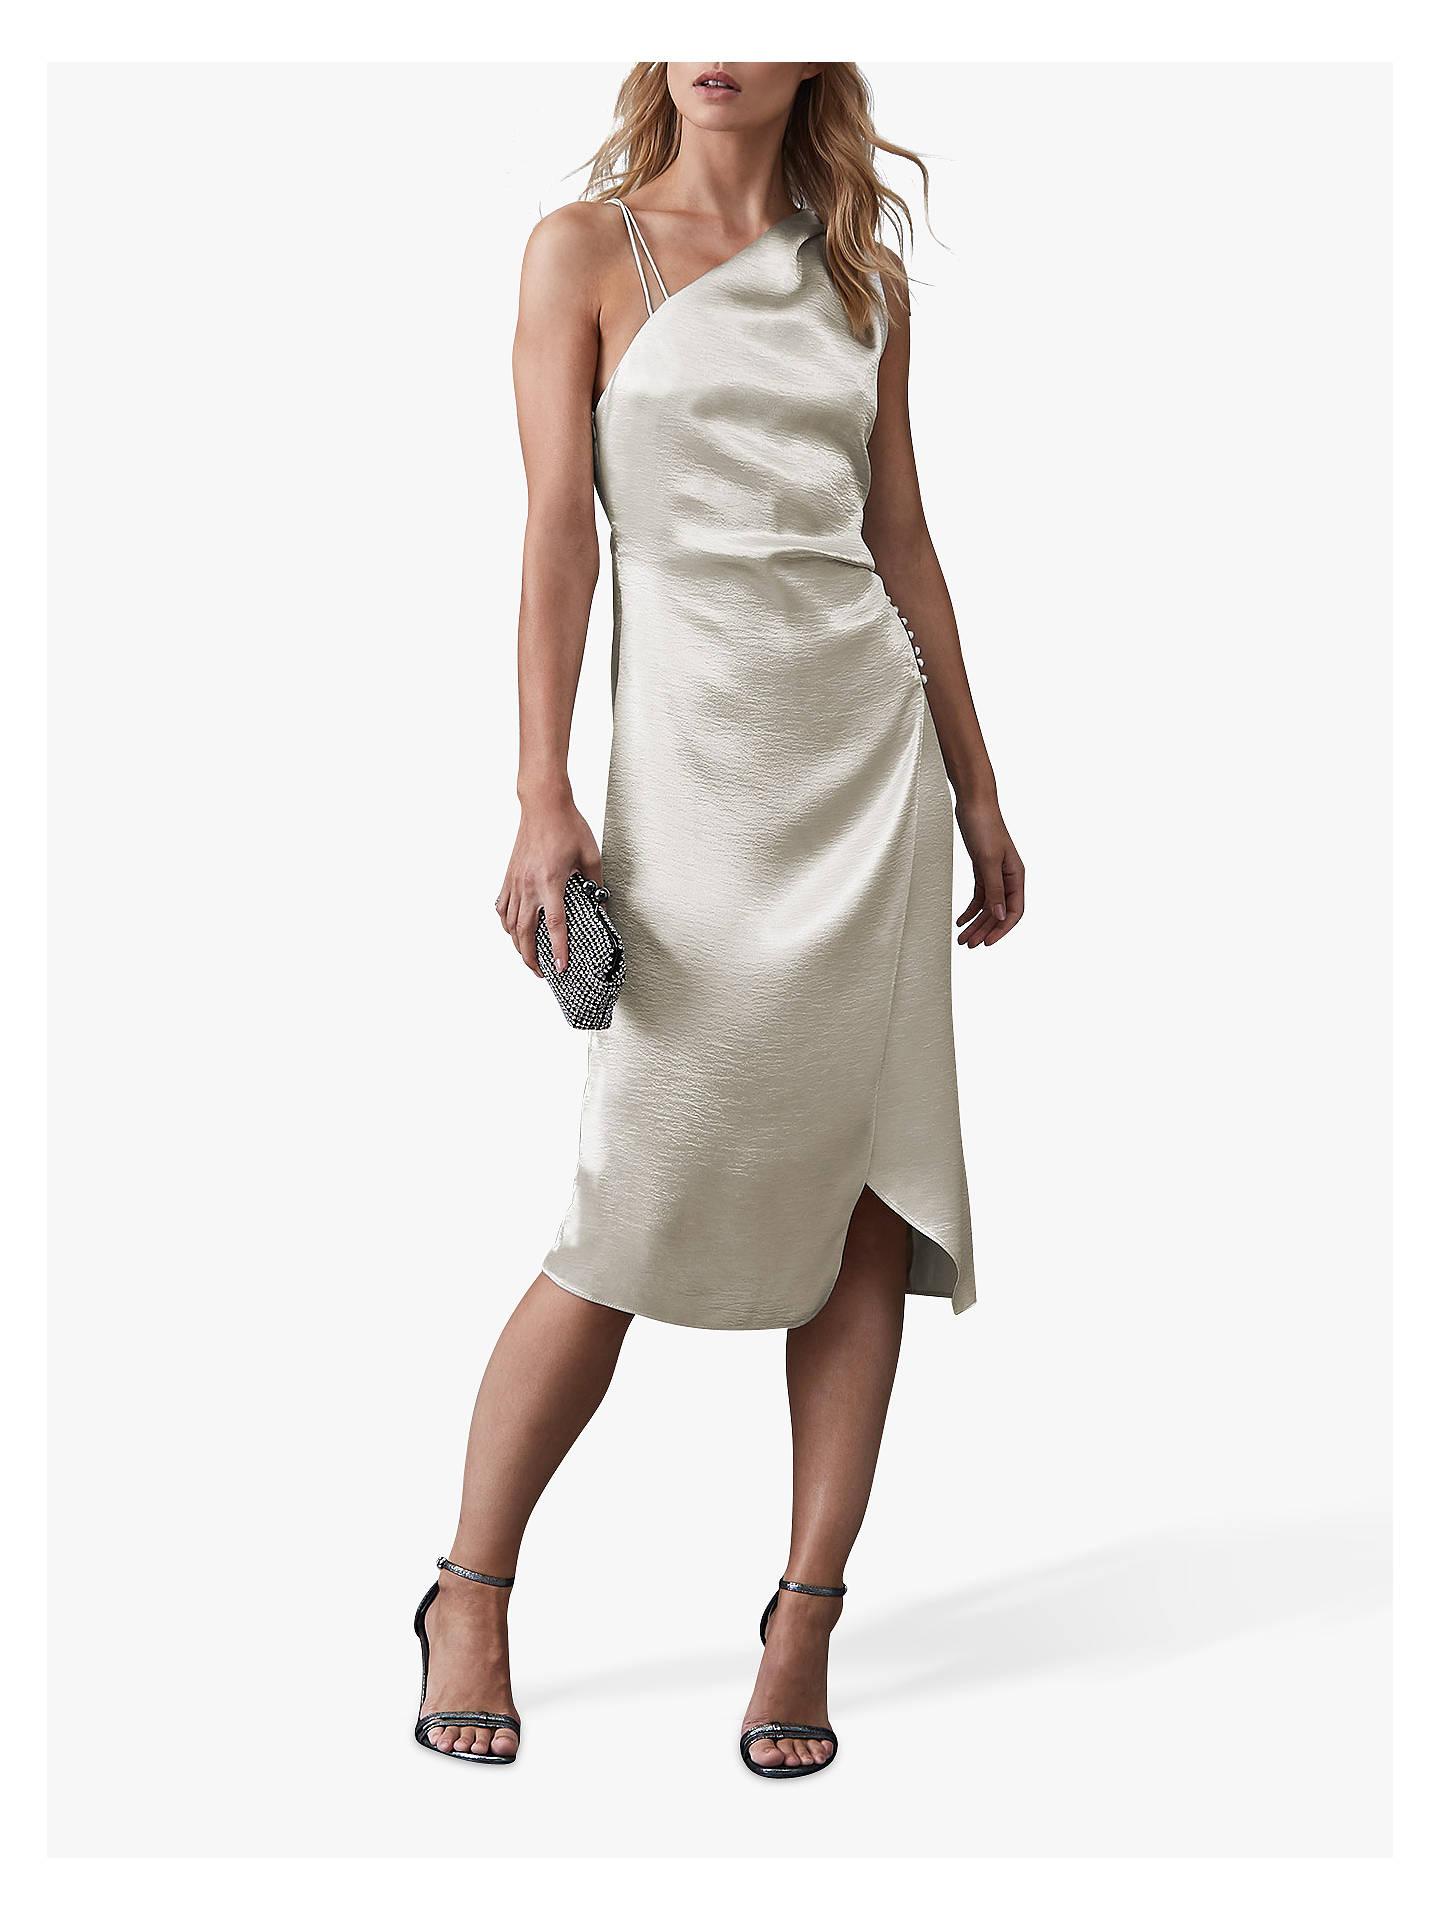 BuyReiss Positano Strappy Cocktail Dress, Silver, 16 Online at johnlewis.com